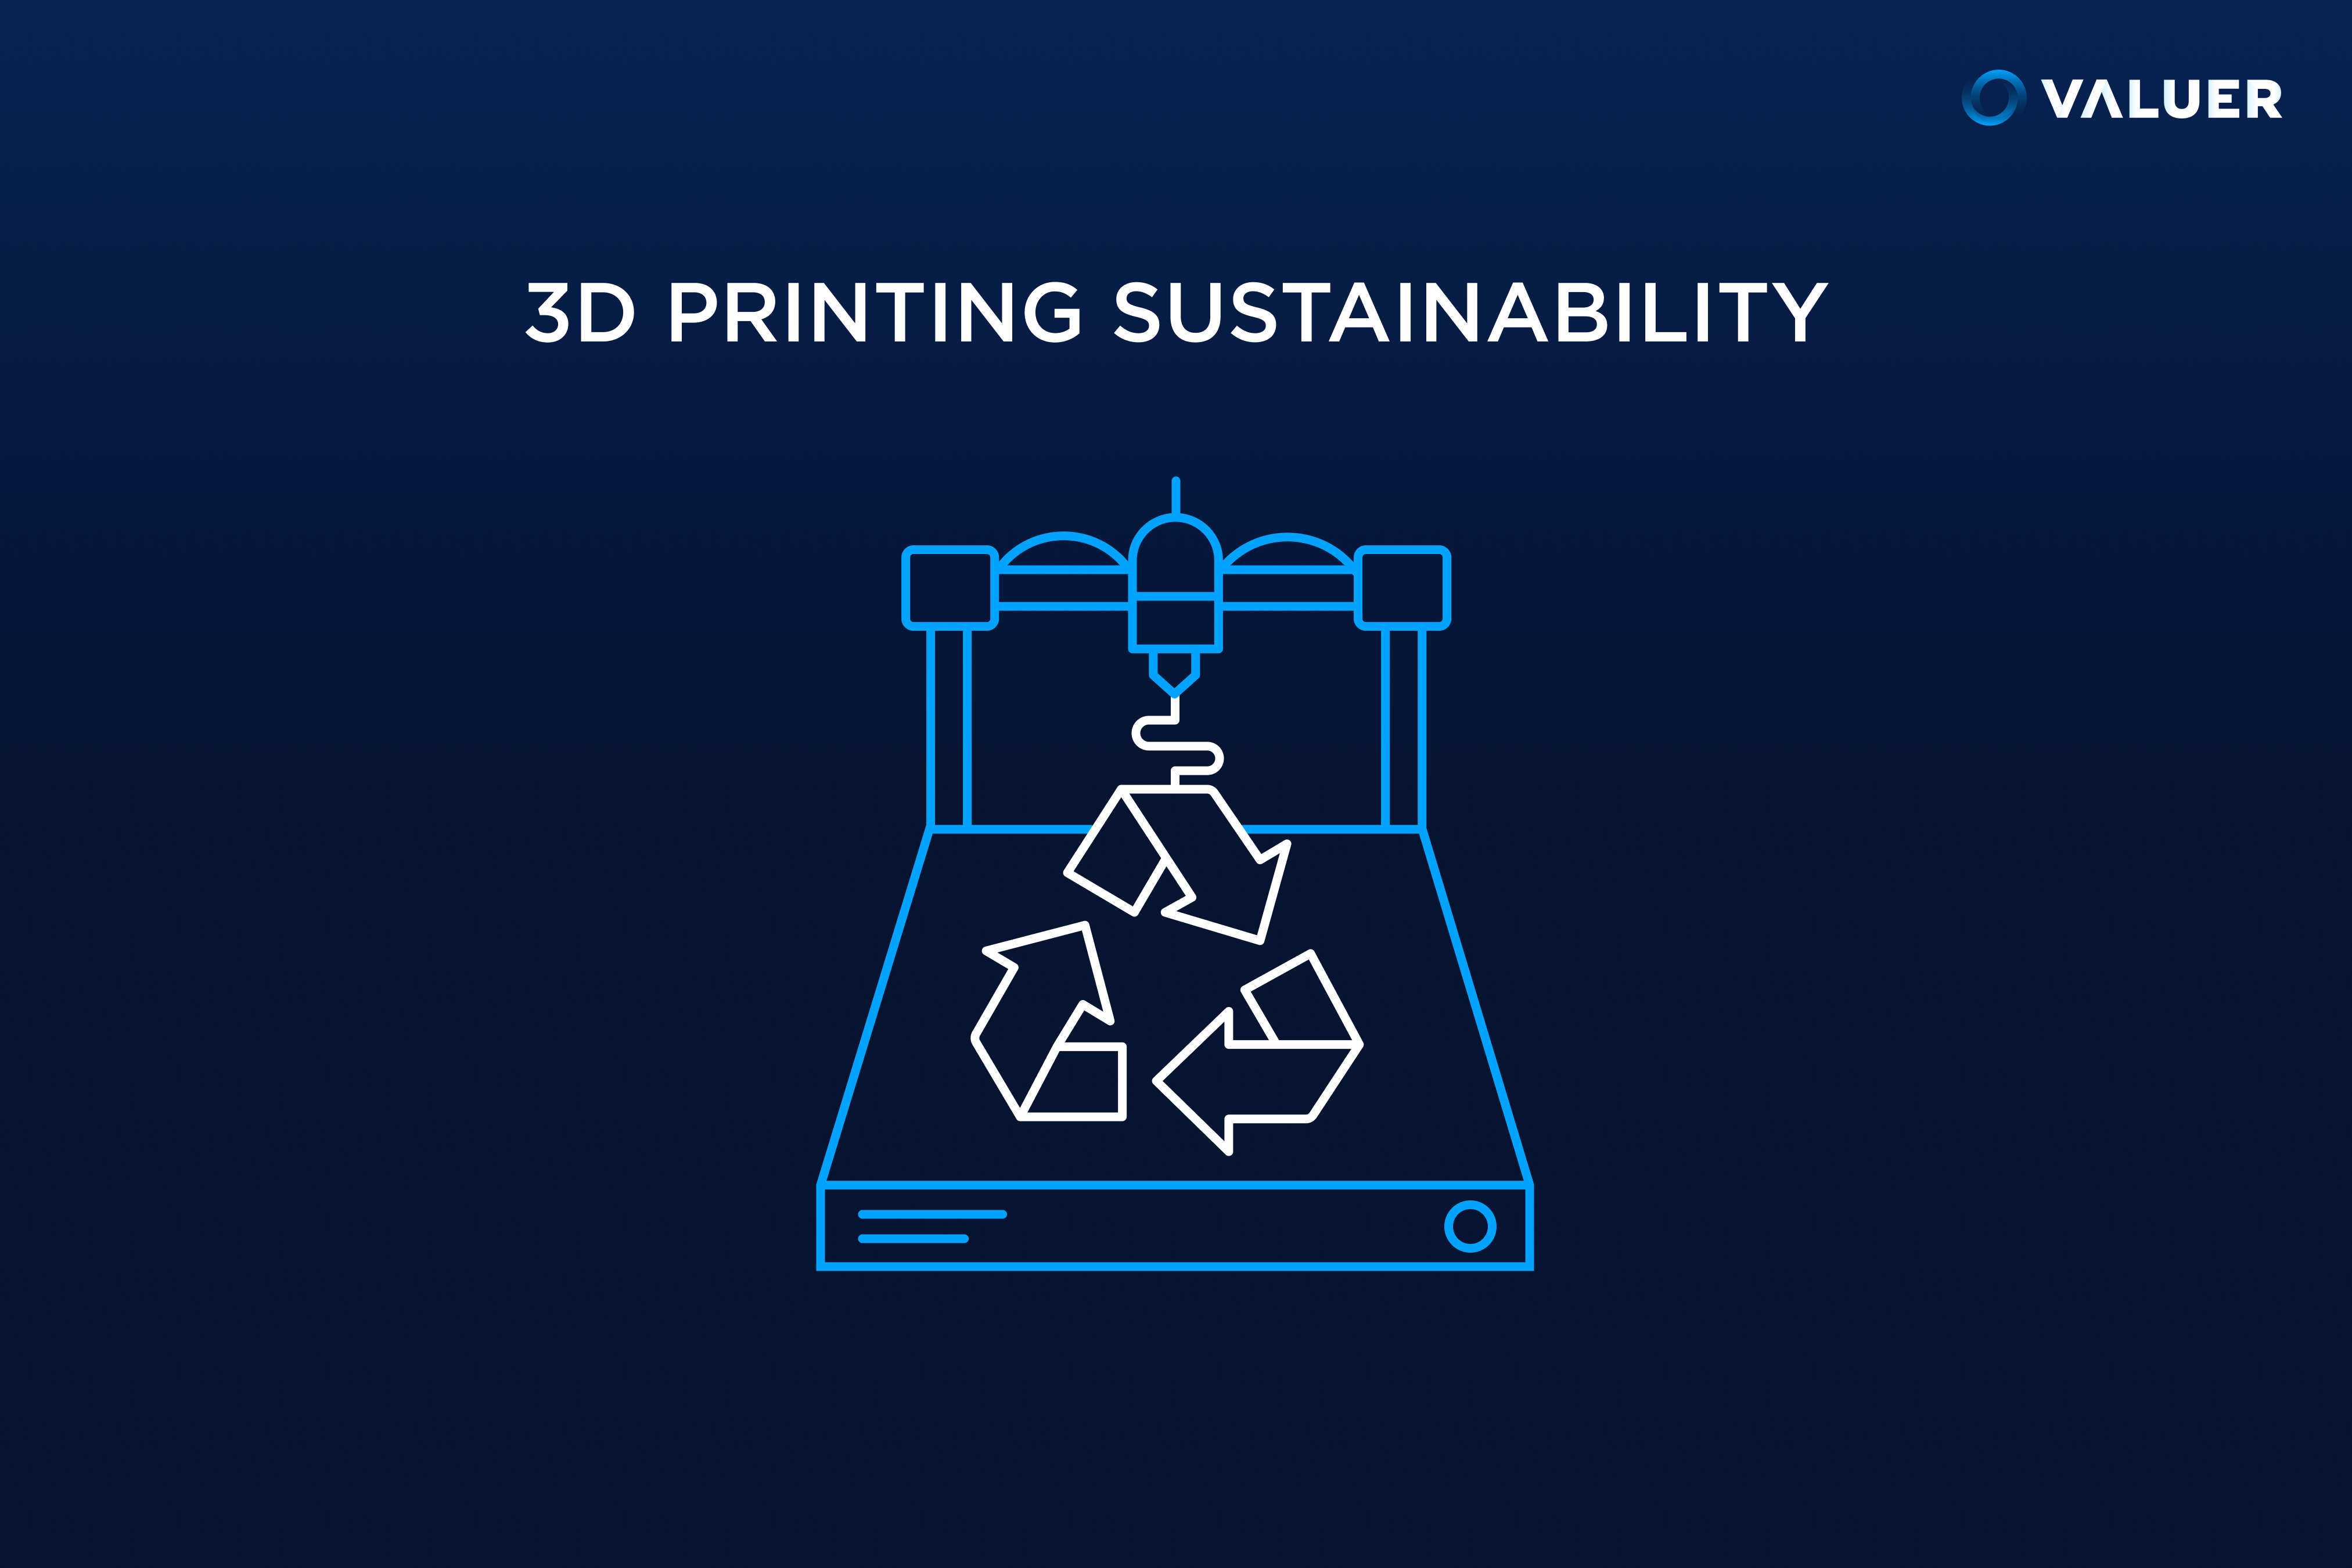 sustainable application of 3D printing